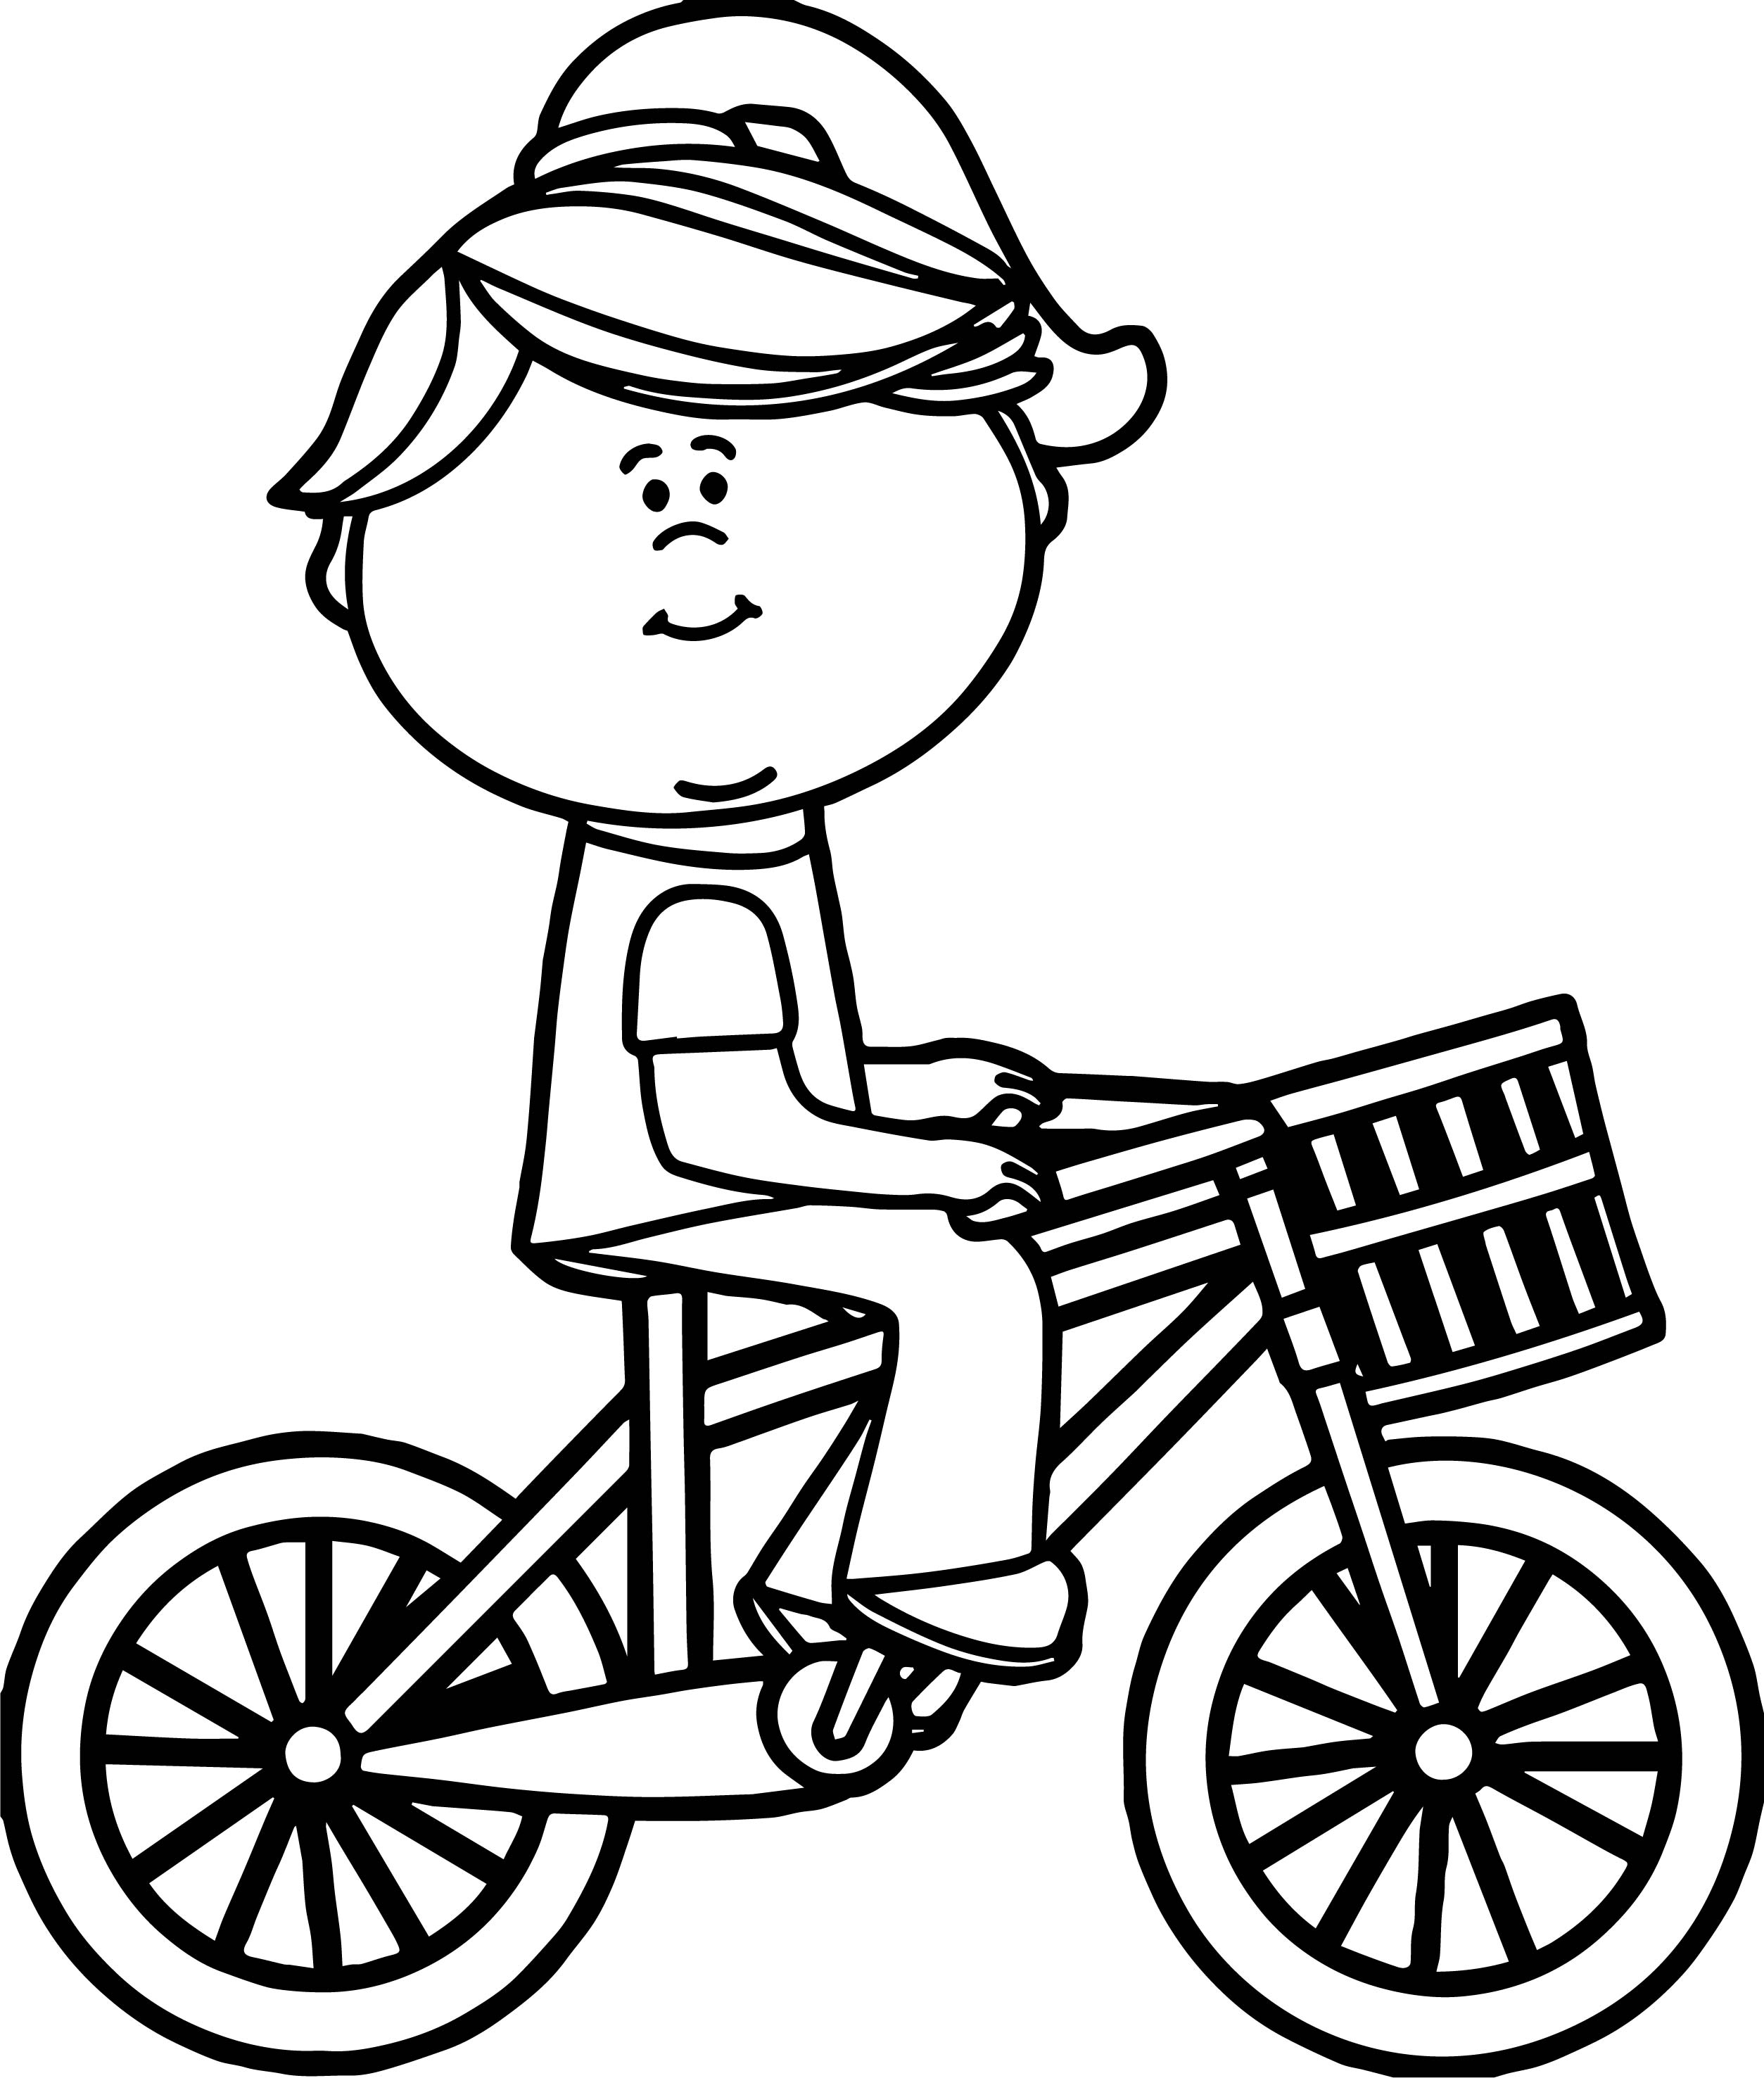 Girl Riding Bicycle With Basket Coloring Page Wecoloringpage